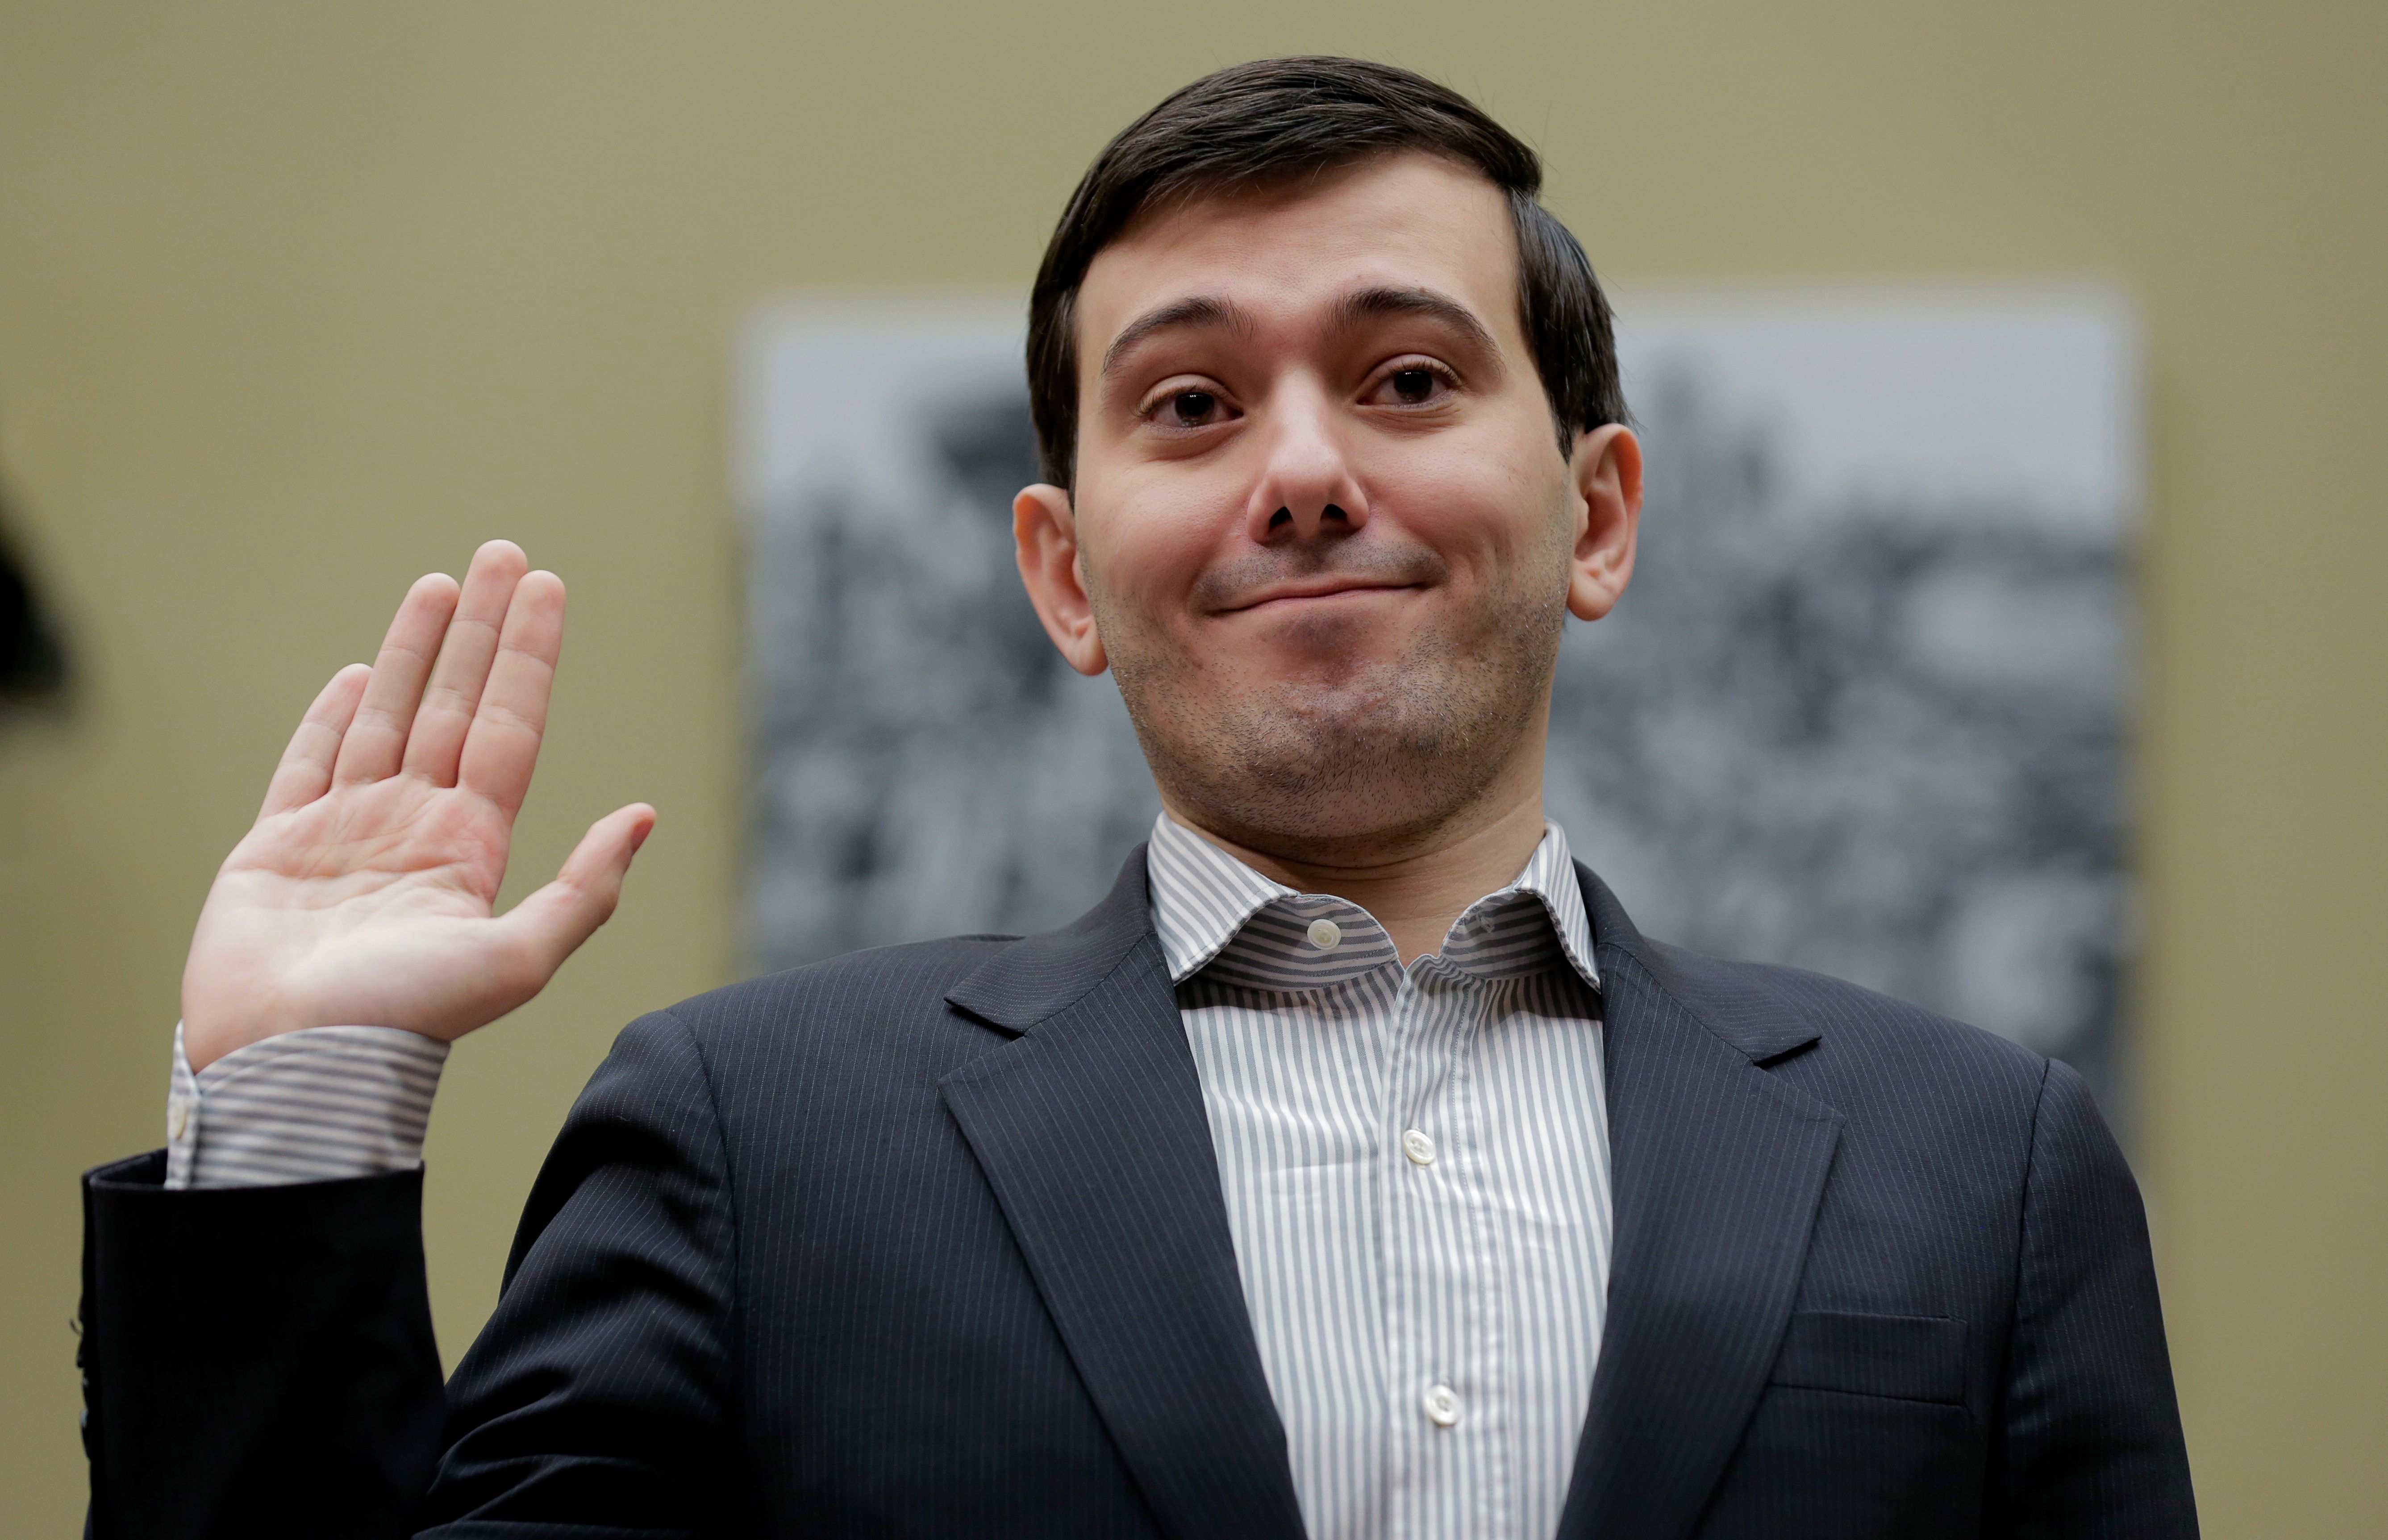 "Martin Shkreli, former CEO of Turing Pharmaceuticals LLC, is sworn in to testify at a House Oversight and Government Reform hearing on ""Developments in the Prescription Drug Market Oversight"" on Capitol Hill in Washington February 4, 2016. Shkreli invoked his Fifth Amendment right against self-incrimination and declined to answer questions on Thursday from U.S. lawmakers interested in why the company raised the price of a lifesaving medicine by 5,000 percent.  REUTERS/Joshua Roberts TPX IMAGES OF THE DAY"